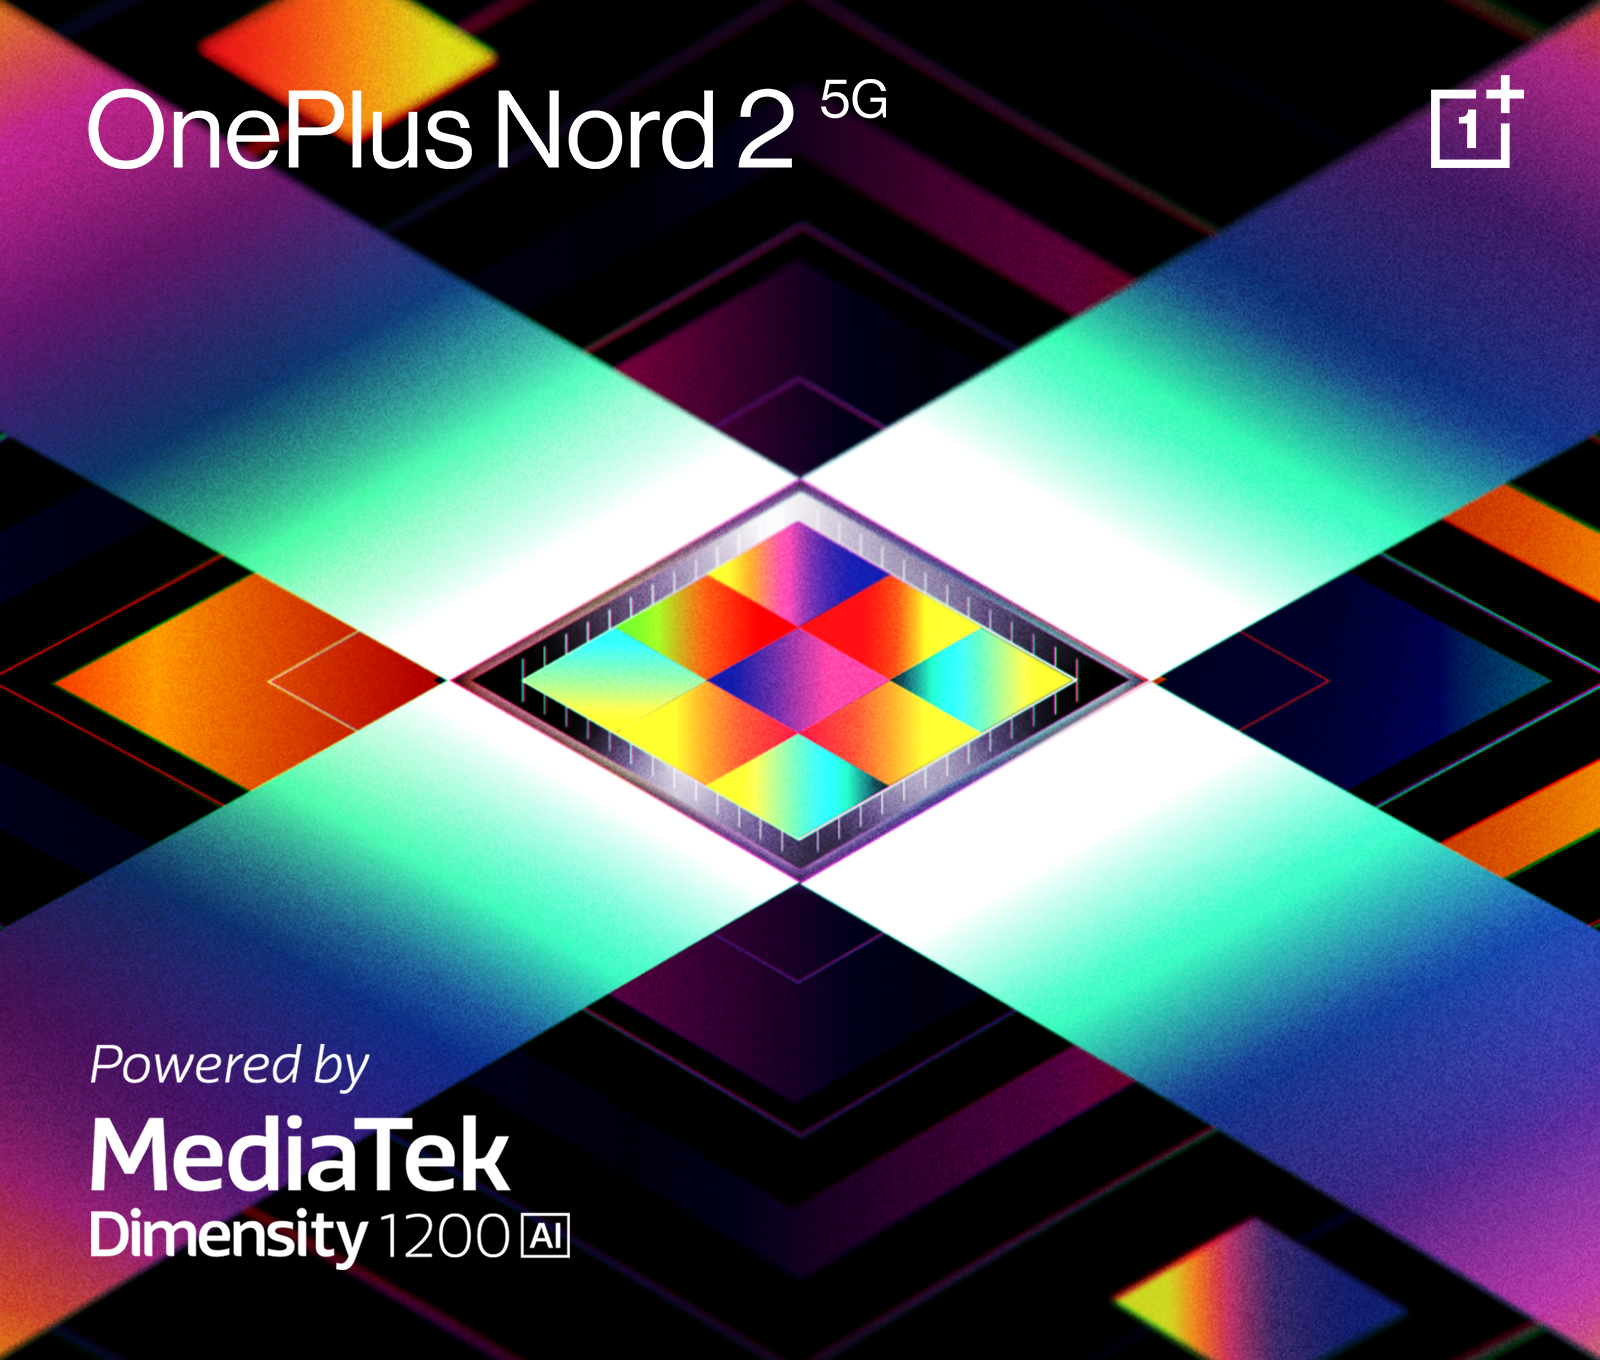 OnePlus Nord 2 5G: official presentation in July